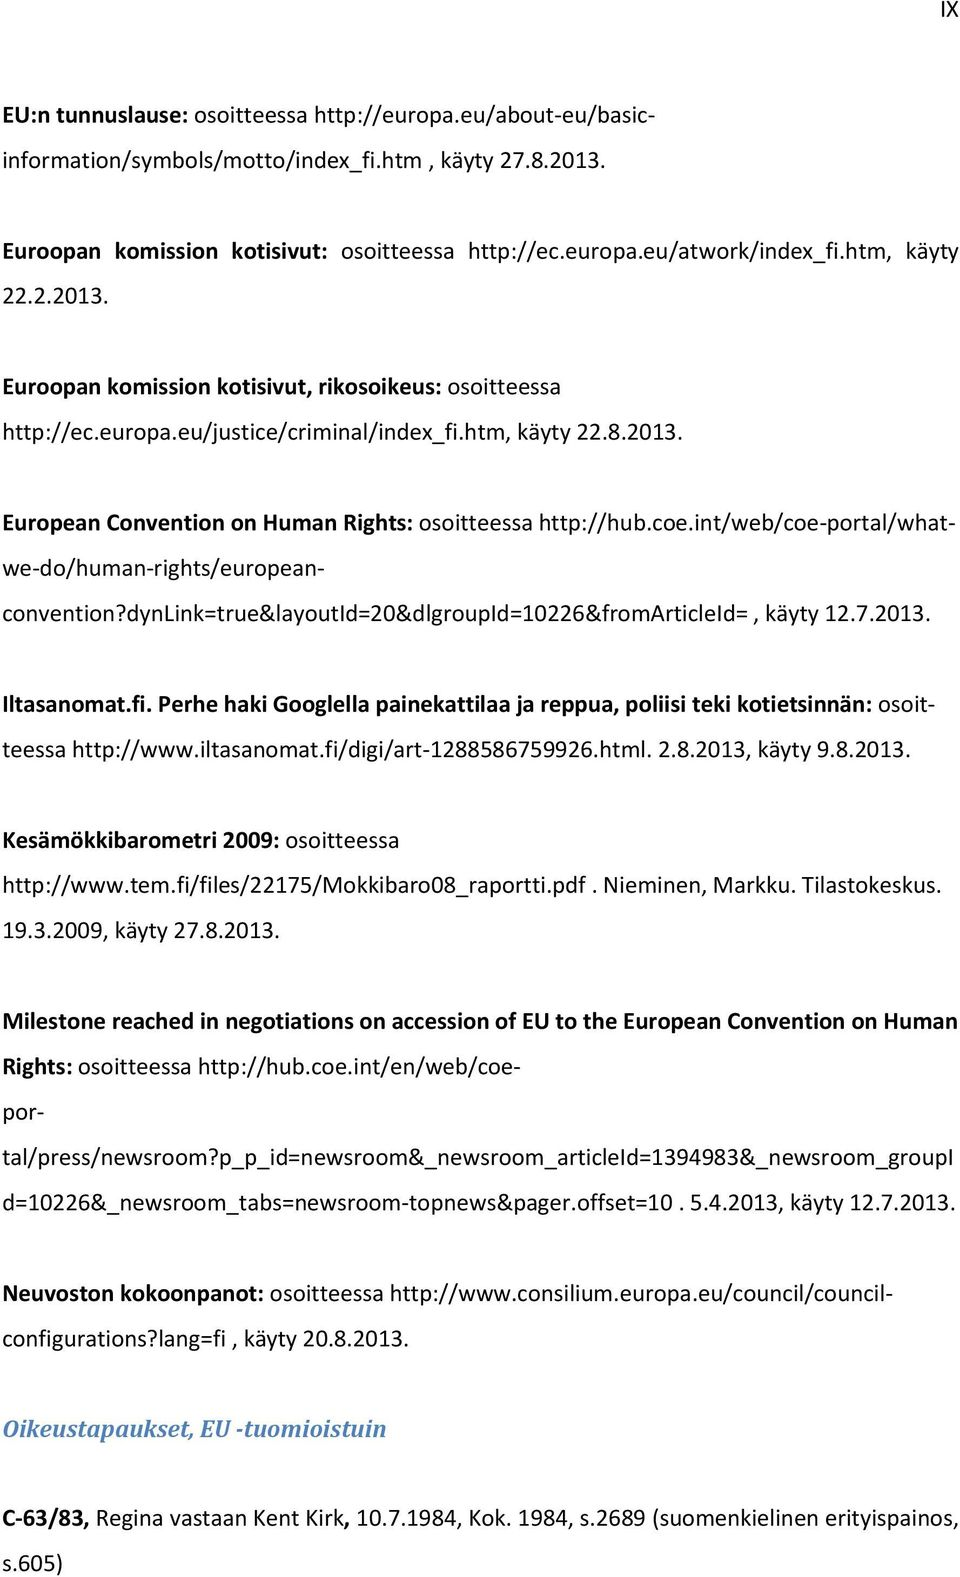 coe.int/web/coe-portal/what- we-do/human-rights/european- convention?dynlink=true&layoutid=20&dlgroupid=10226&fromarticleid=, käyty 12.7.2013. Iltasanomat.fi.